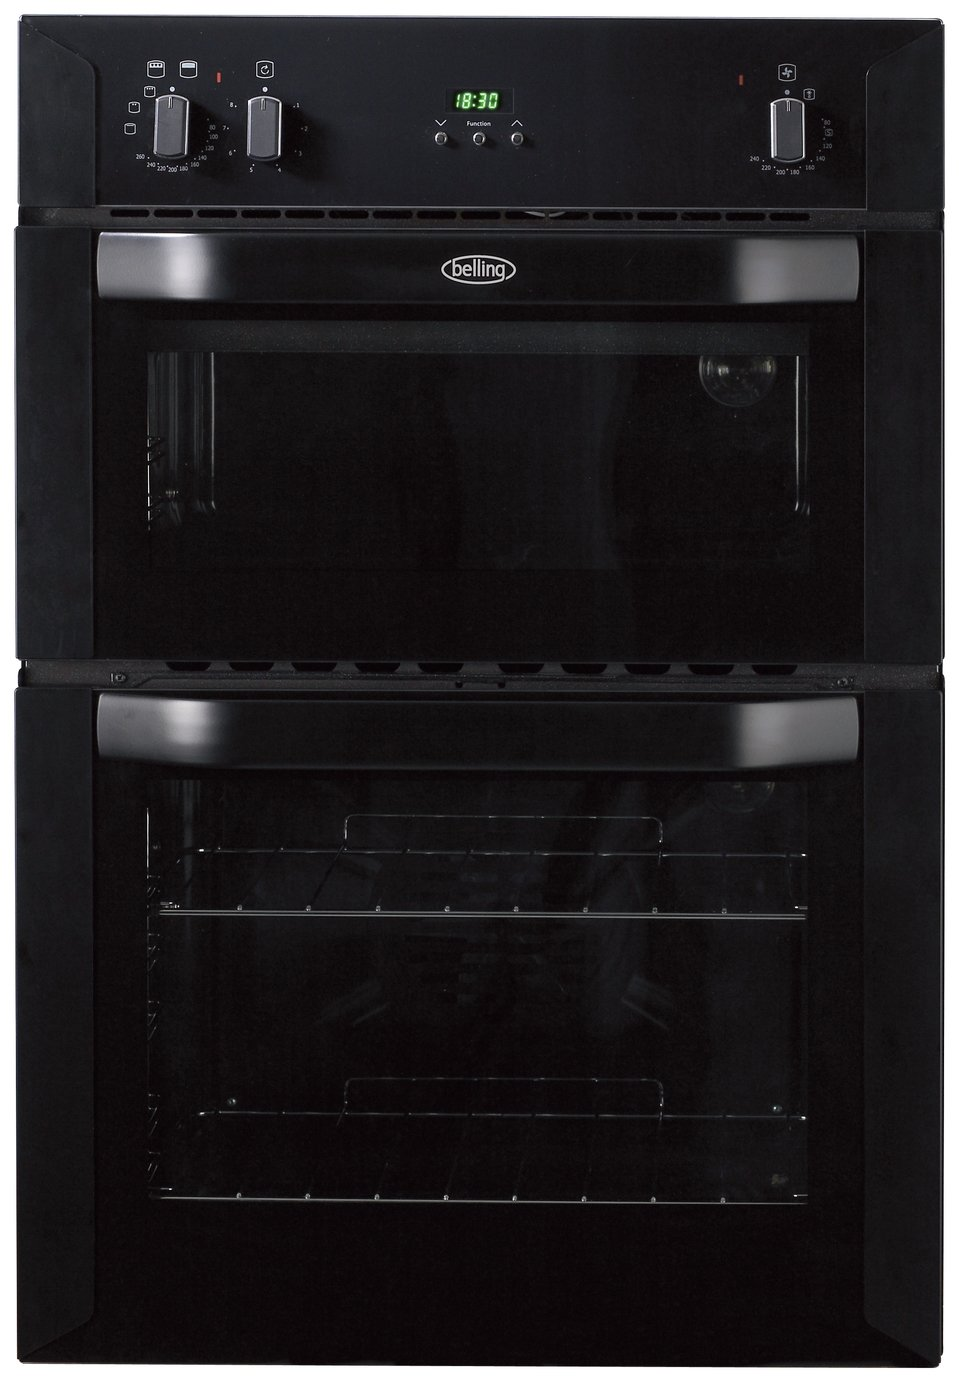 Image of Belling BI90FP Electric Built-In Double Oven - Black